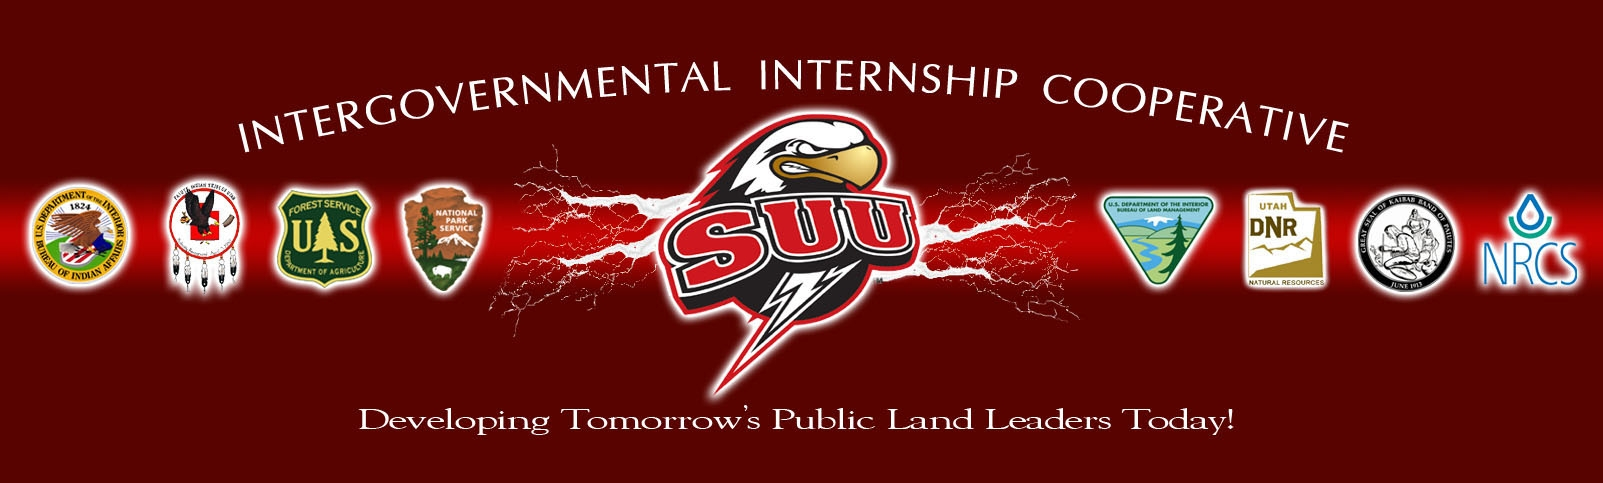 Logo for Southern Utah University's Intergovernmental Intership Cooperative Program